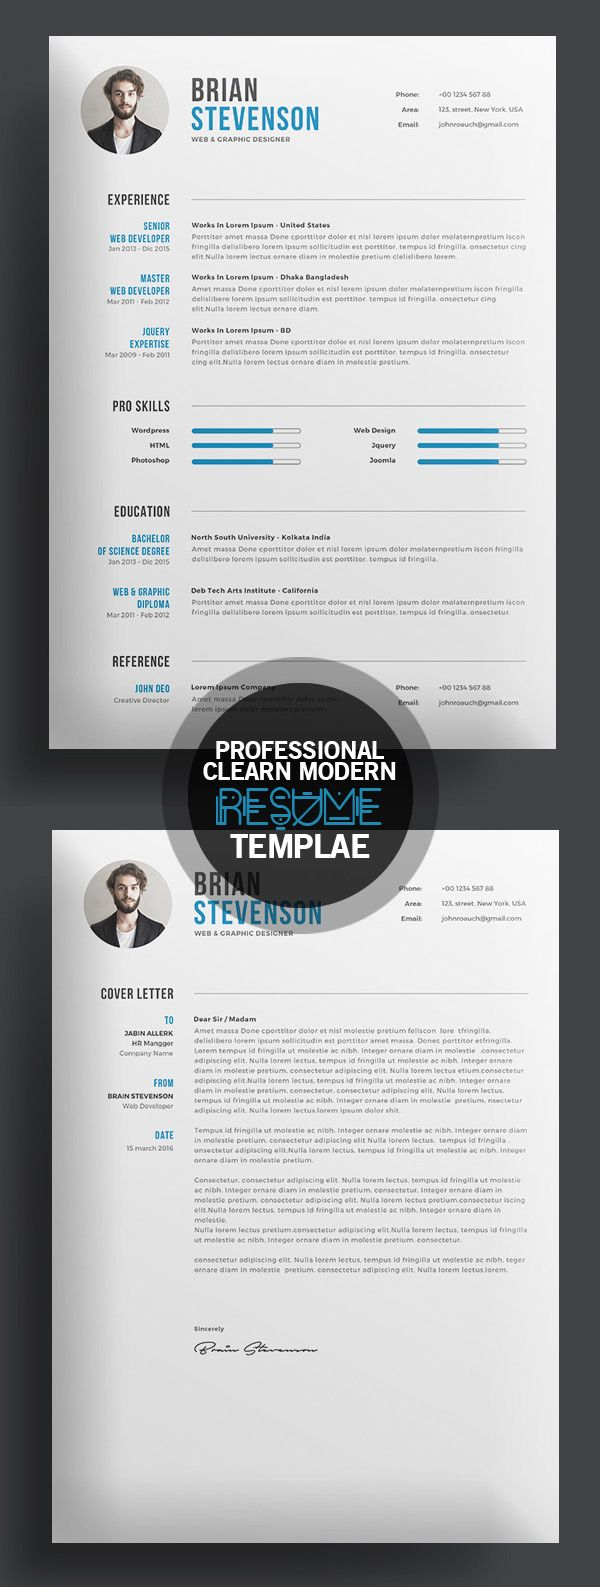 51 best Resume designs images on Pinterest | Resume design, Design ...